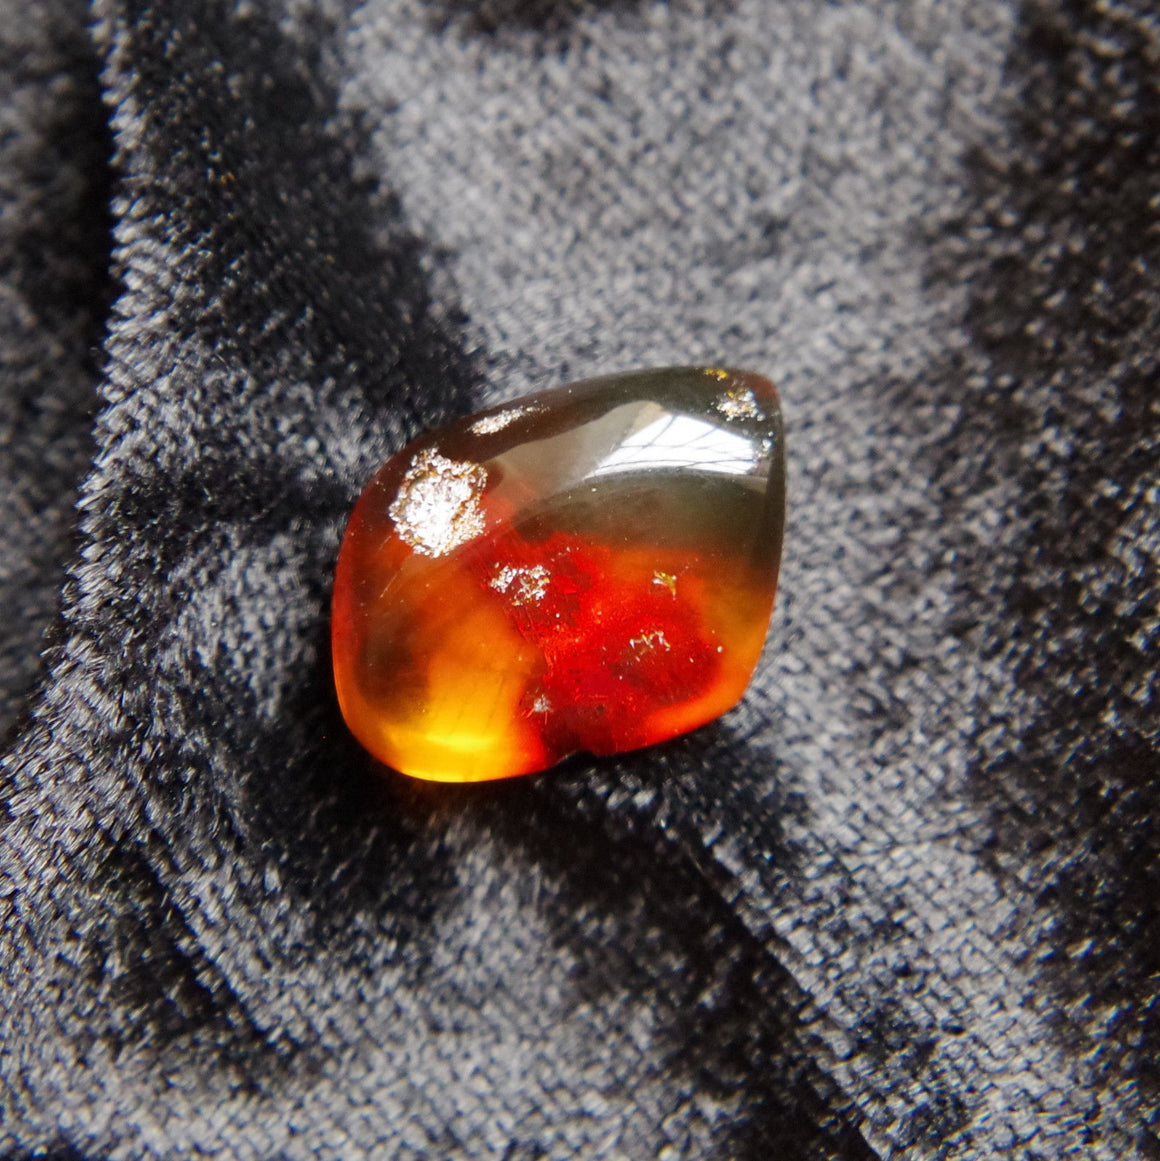 Red Green Mexican Amber Stone Fossil Polished Great Clarity 2.6g